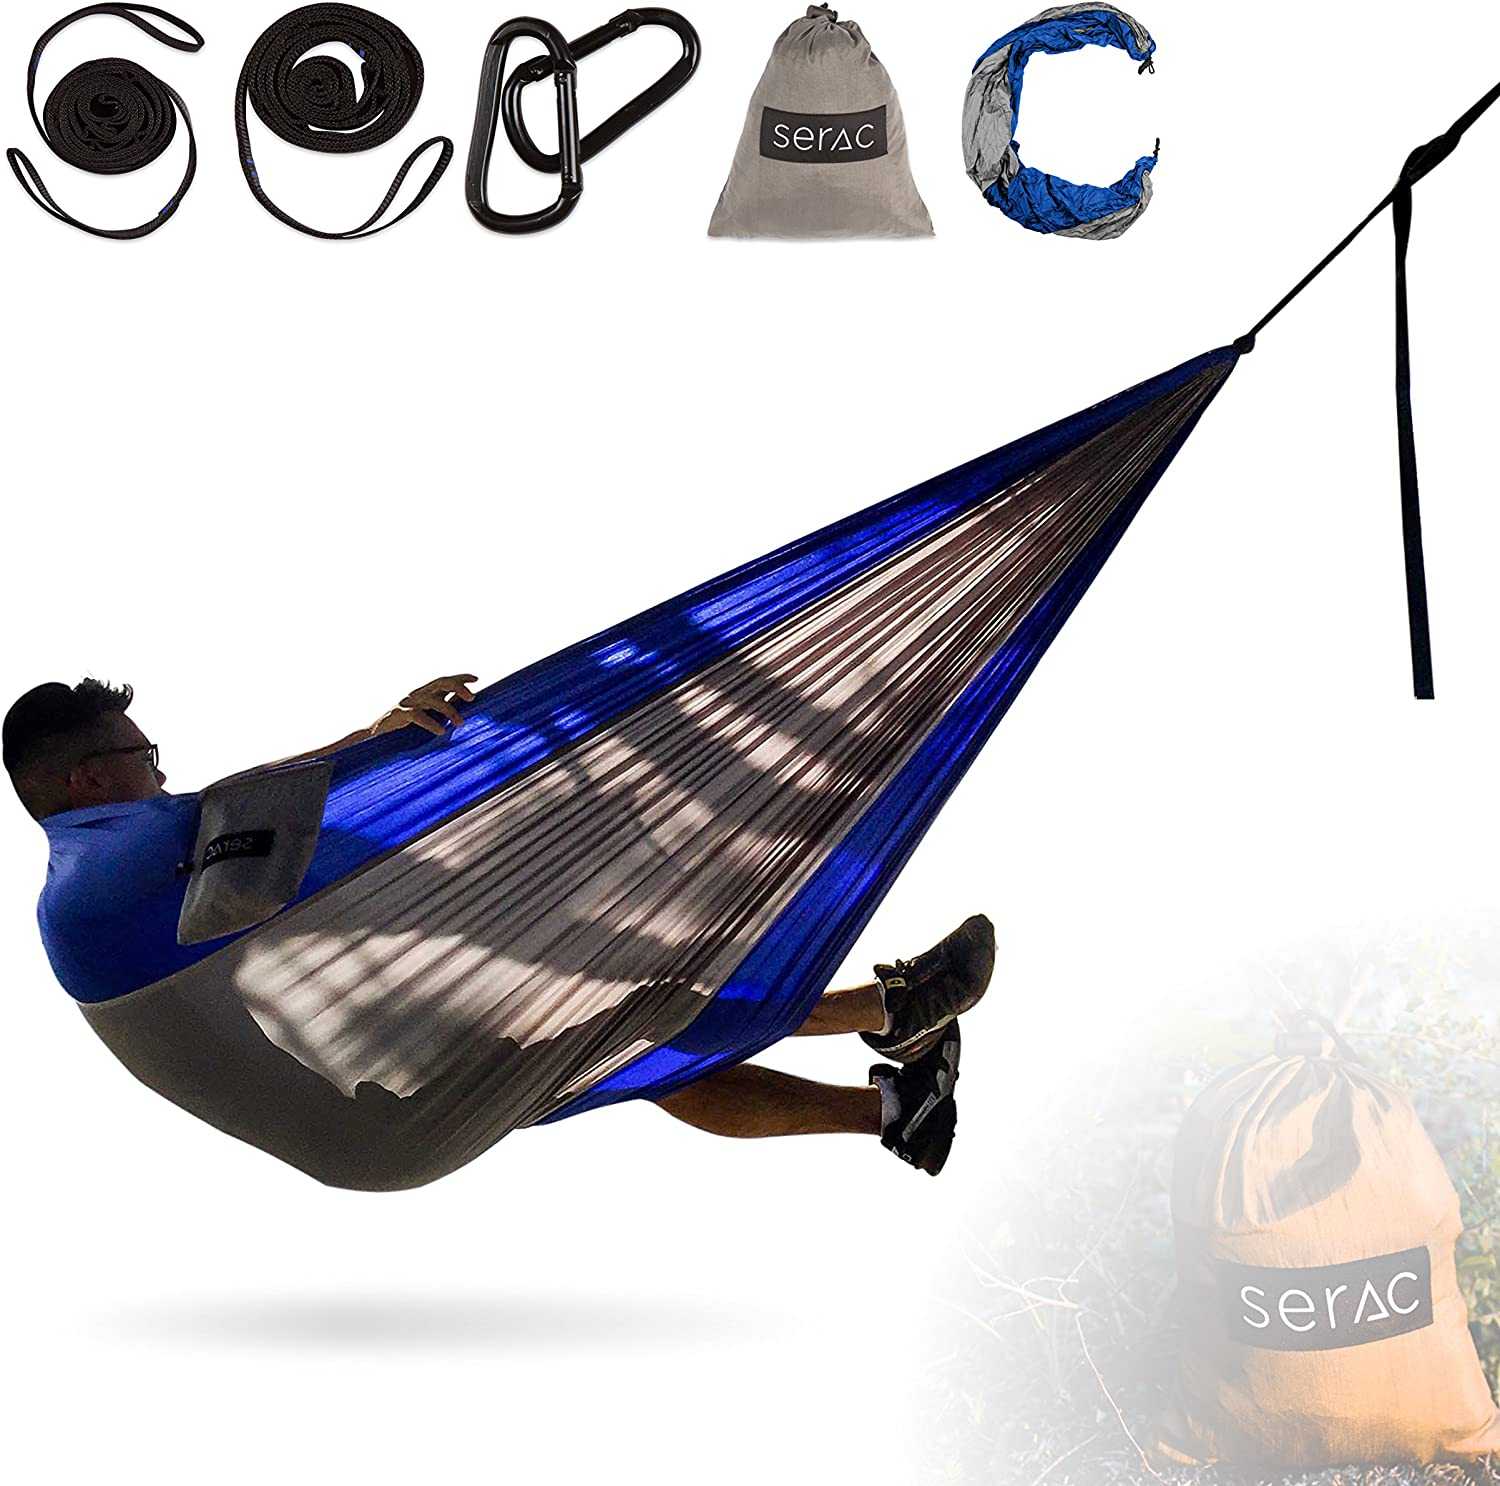 Serac Durable Hammock Strap Bundle Classic Portable Single Camping Hammock with Suspension System – Perfect for The Backpack, Travel and Camping